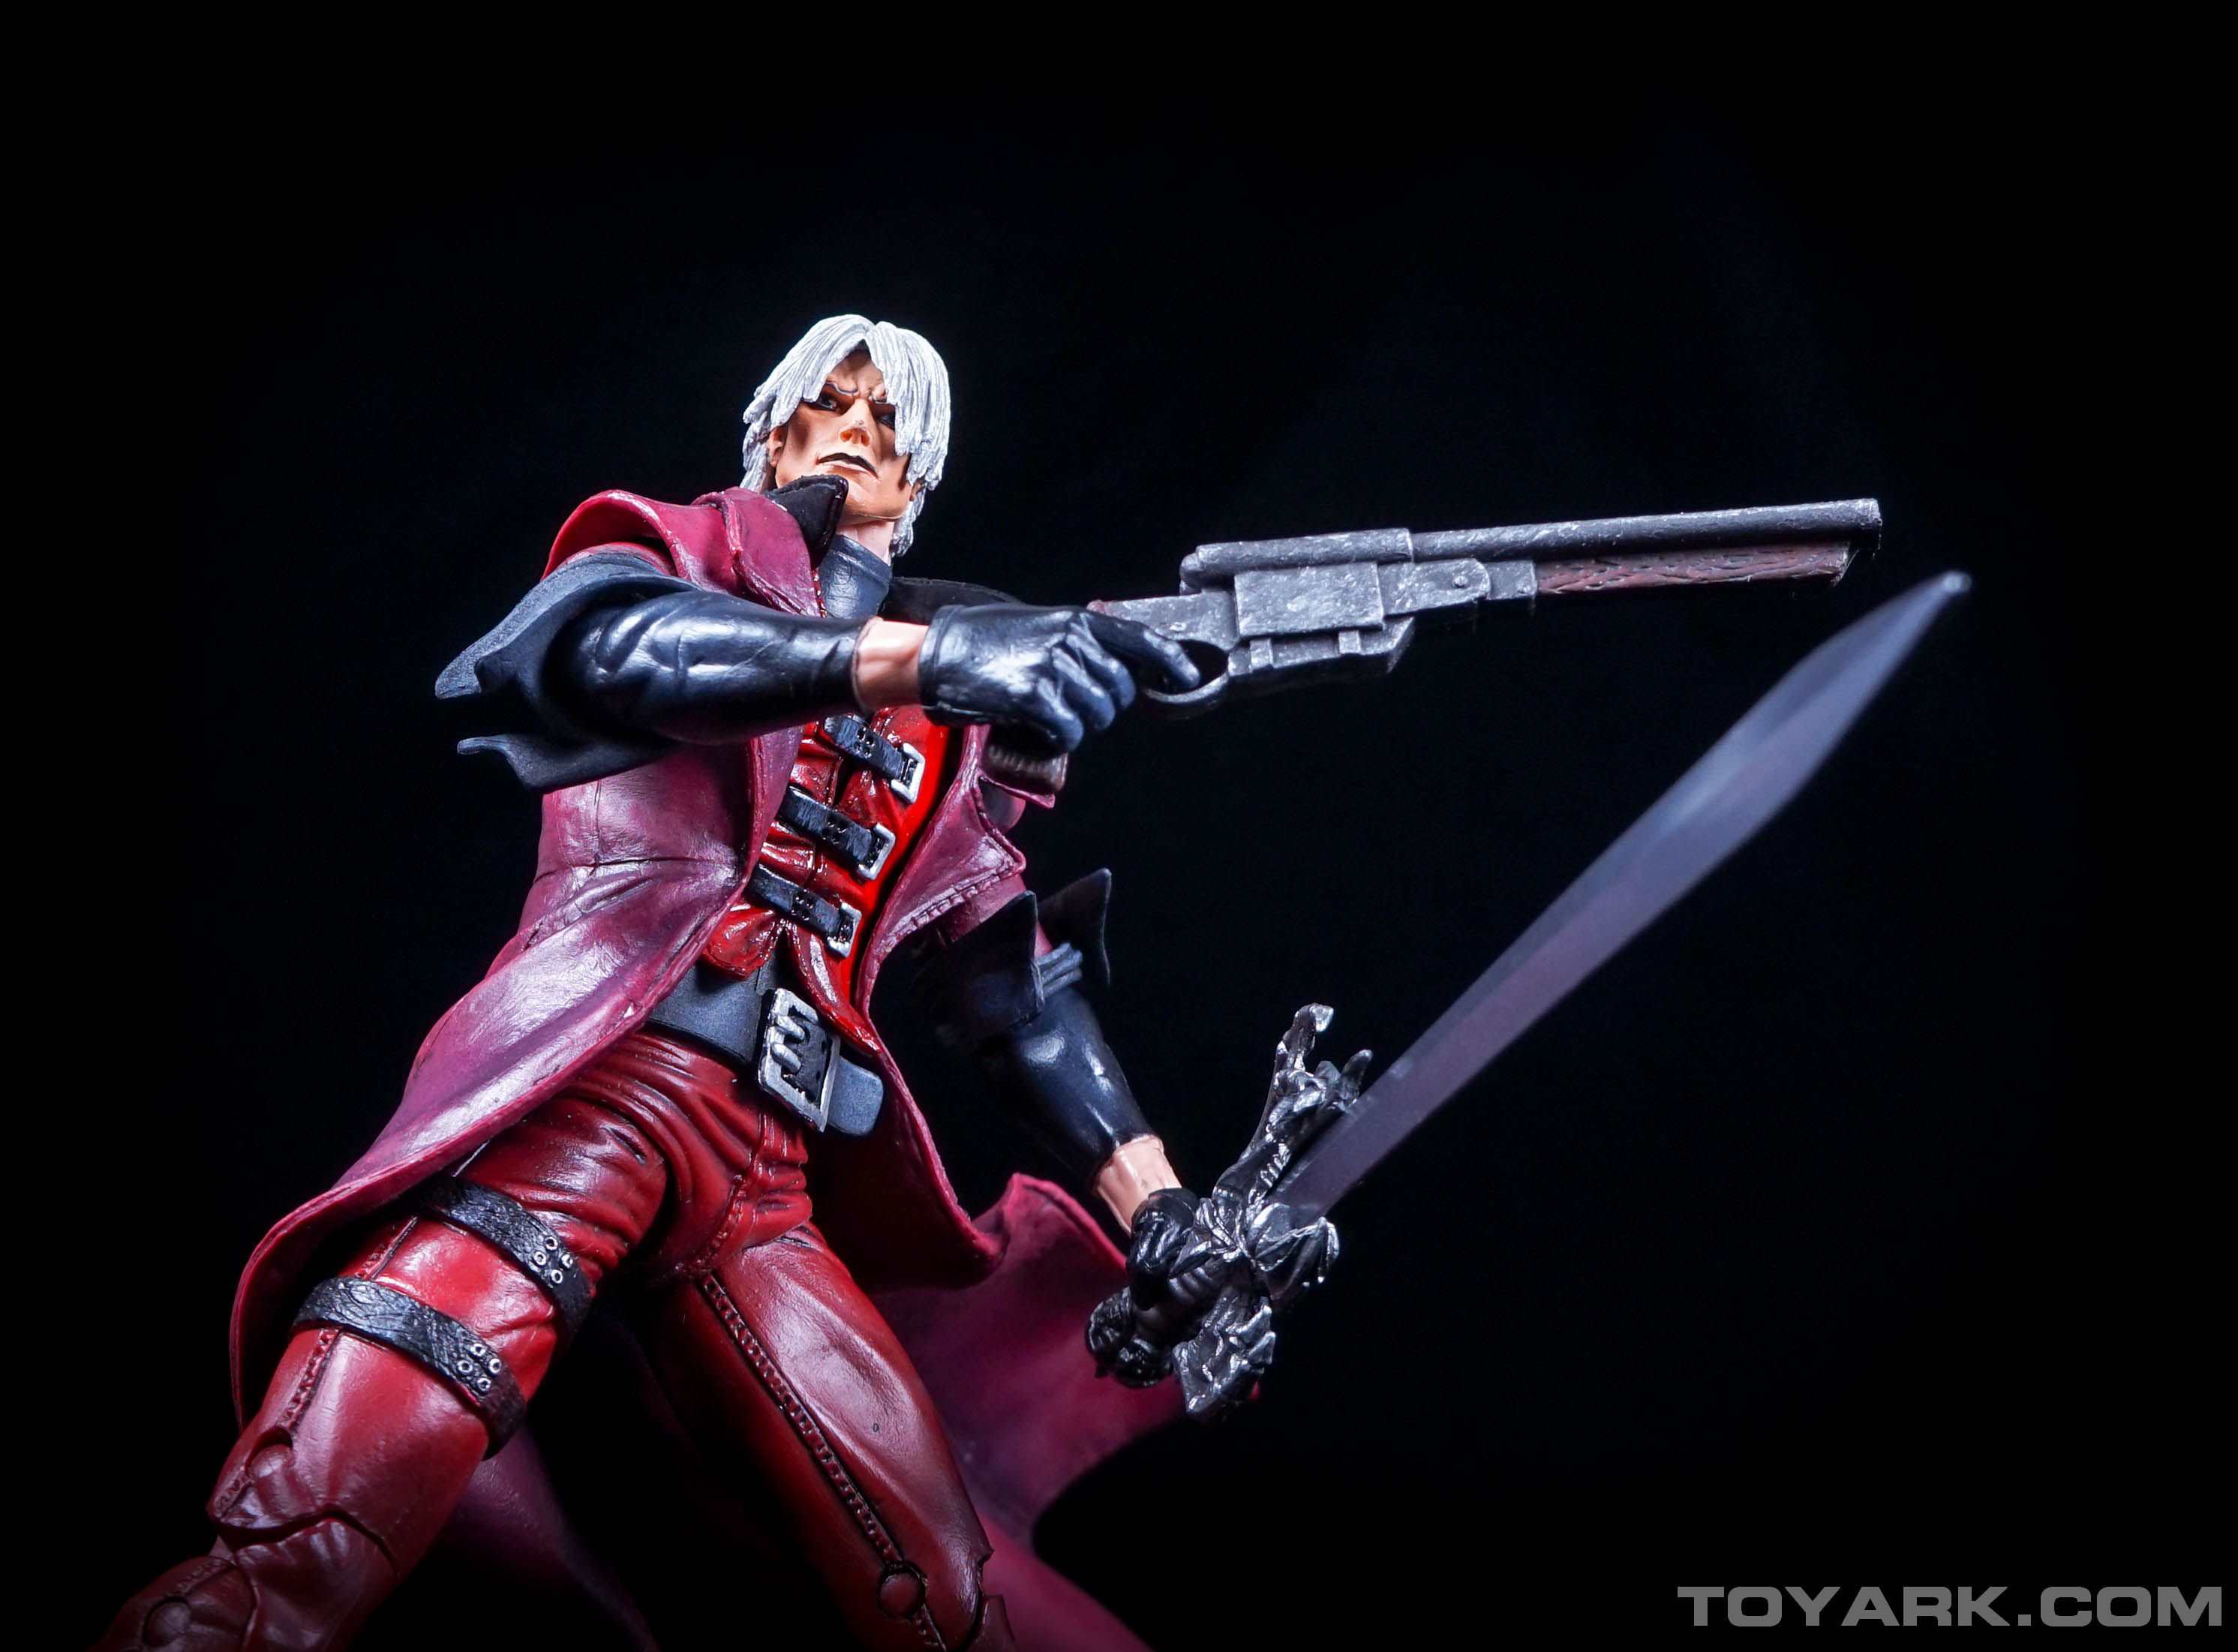 http://news.toyark.com/wp-content/uploads/sites/4/2015/06/NECA-Devil-May-Cry-Dante-027.jpg